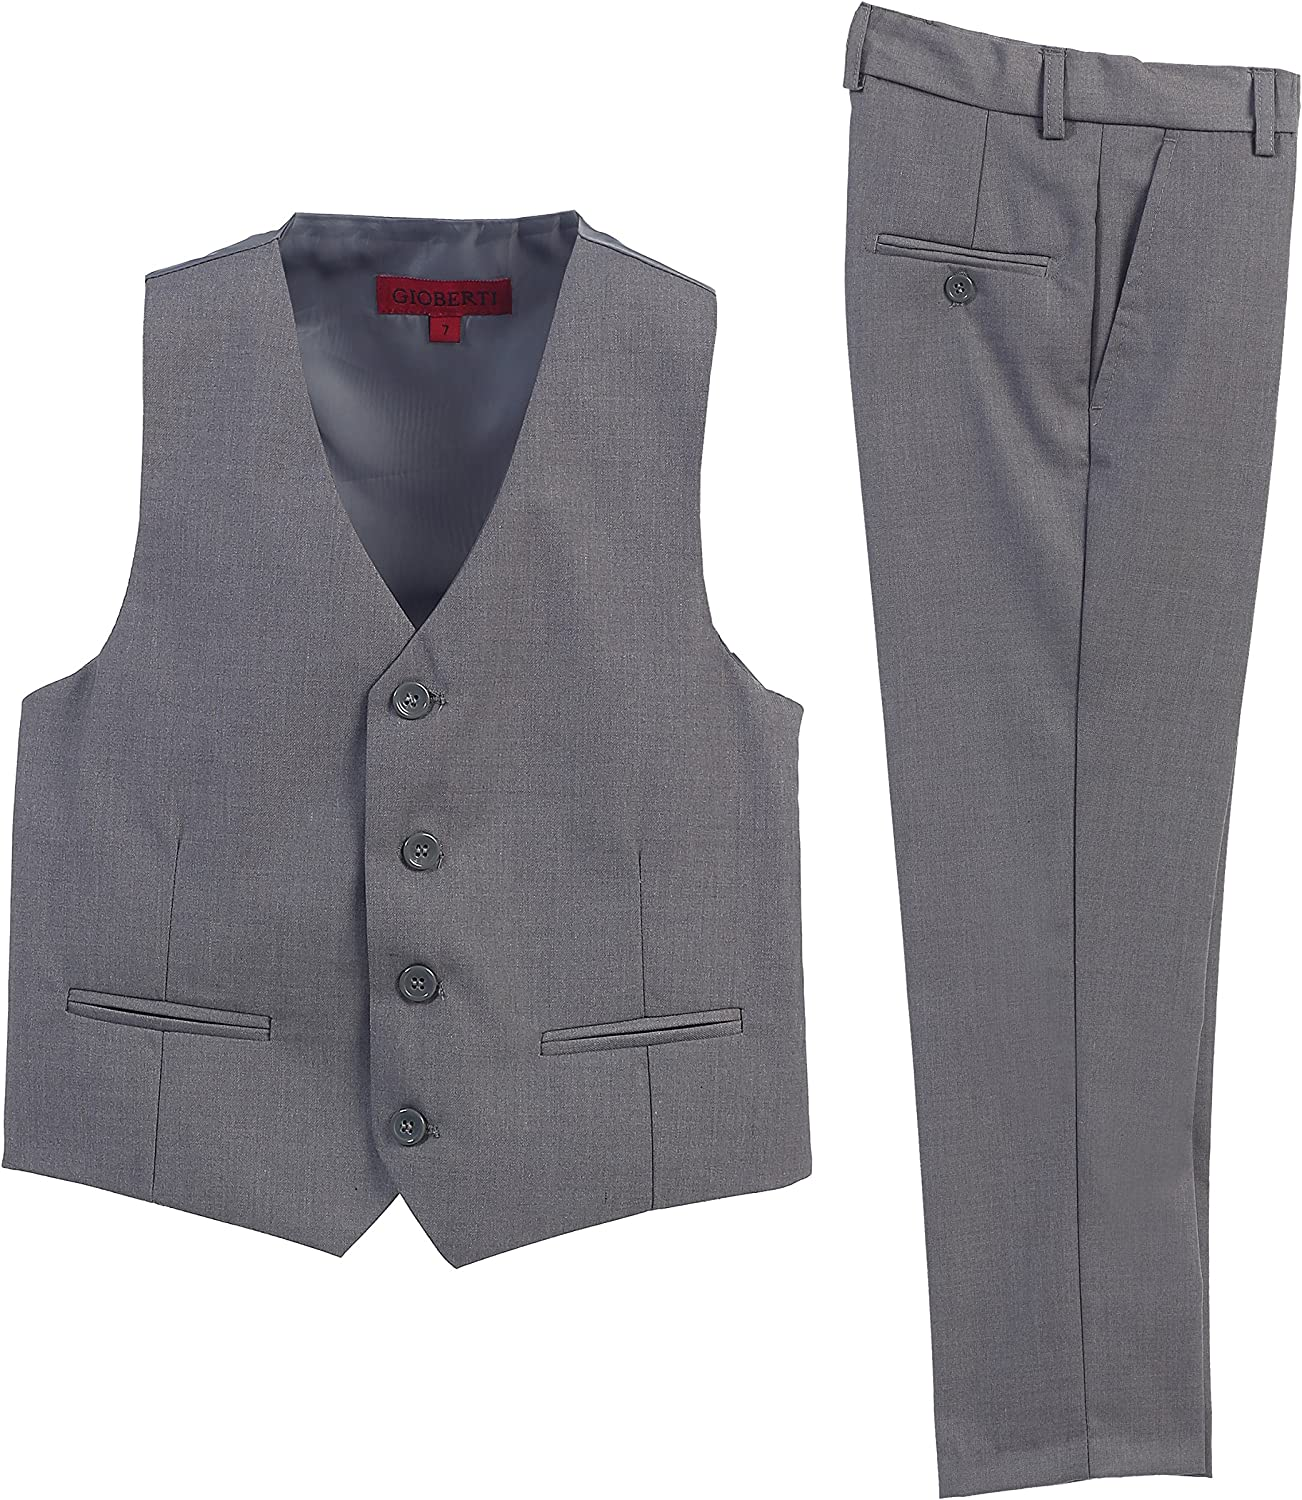 Gioberti Boy's Sale Special Shipping included Price Formal Set Suit